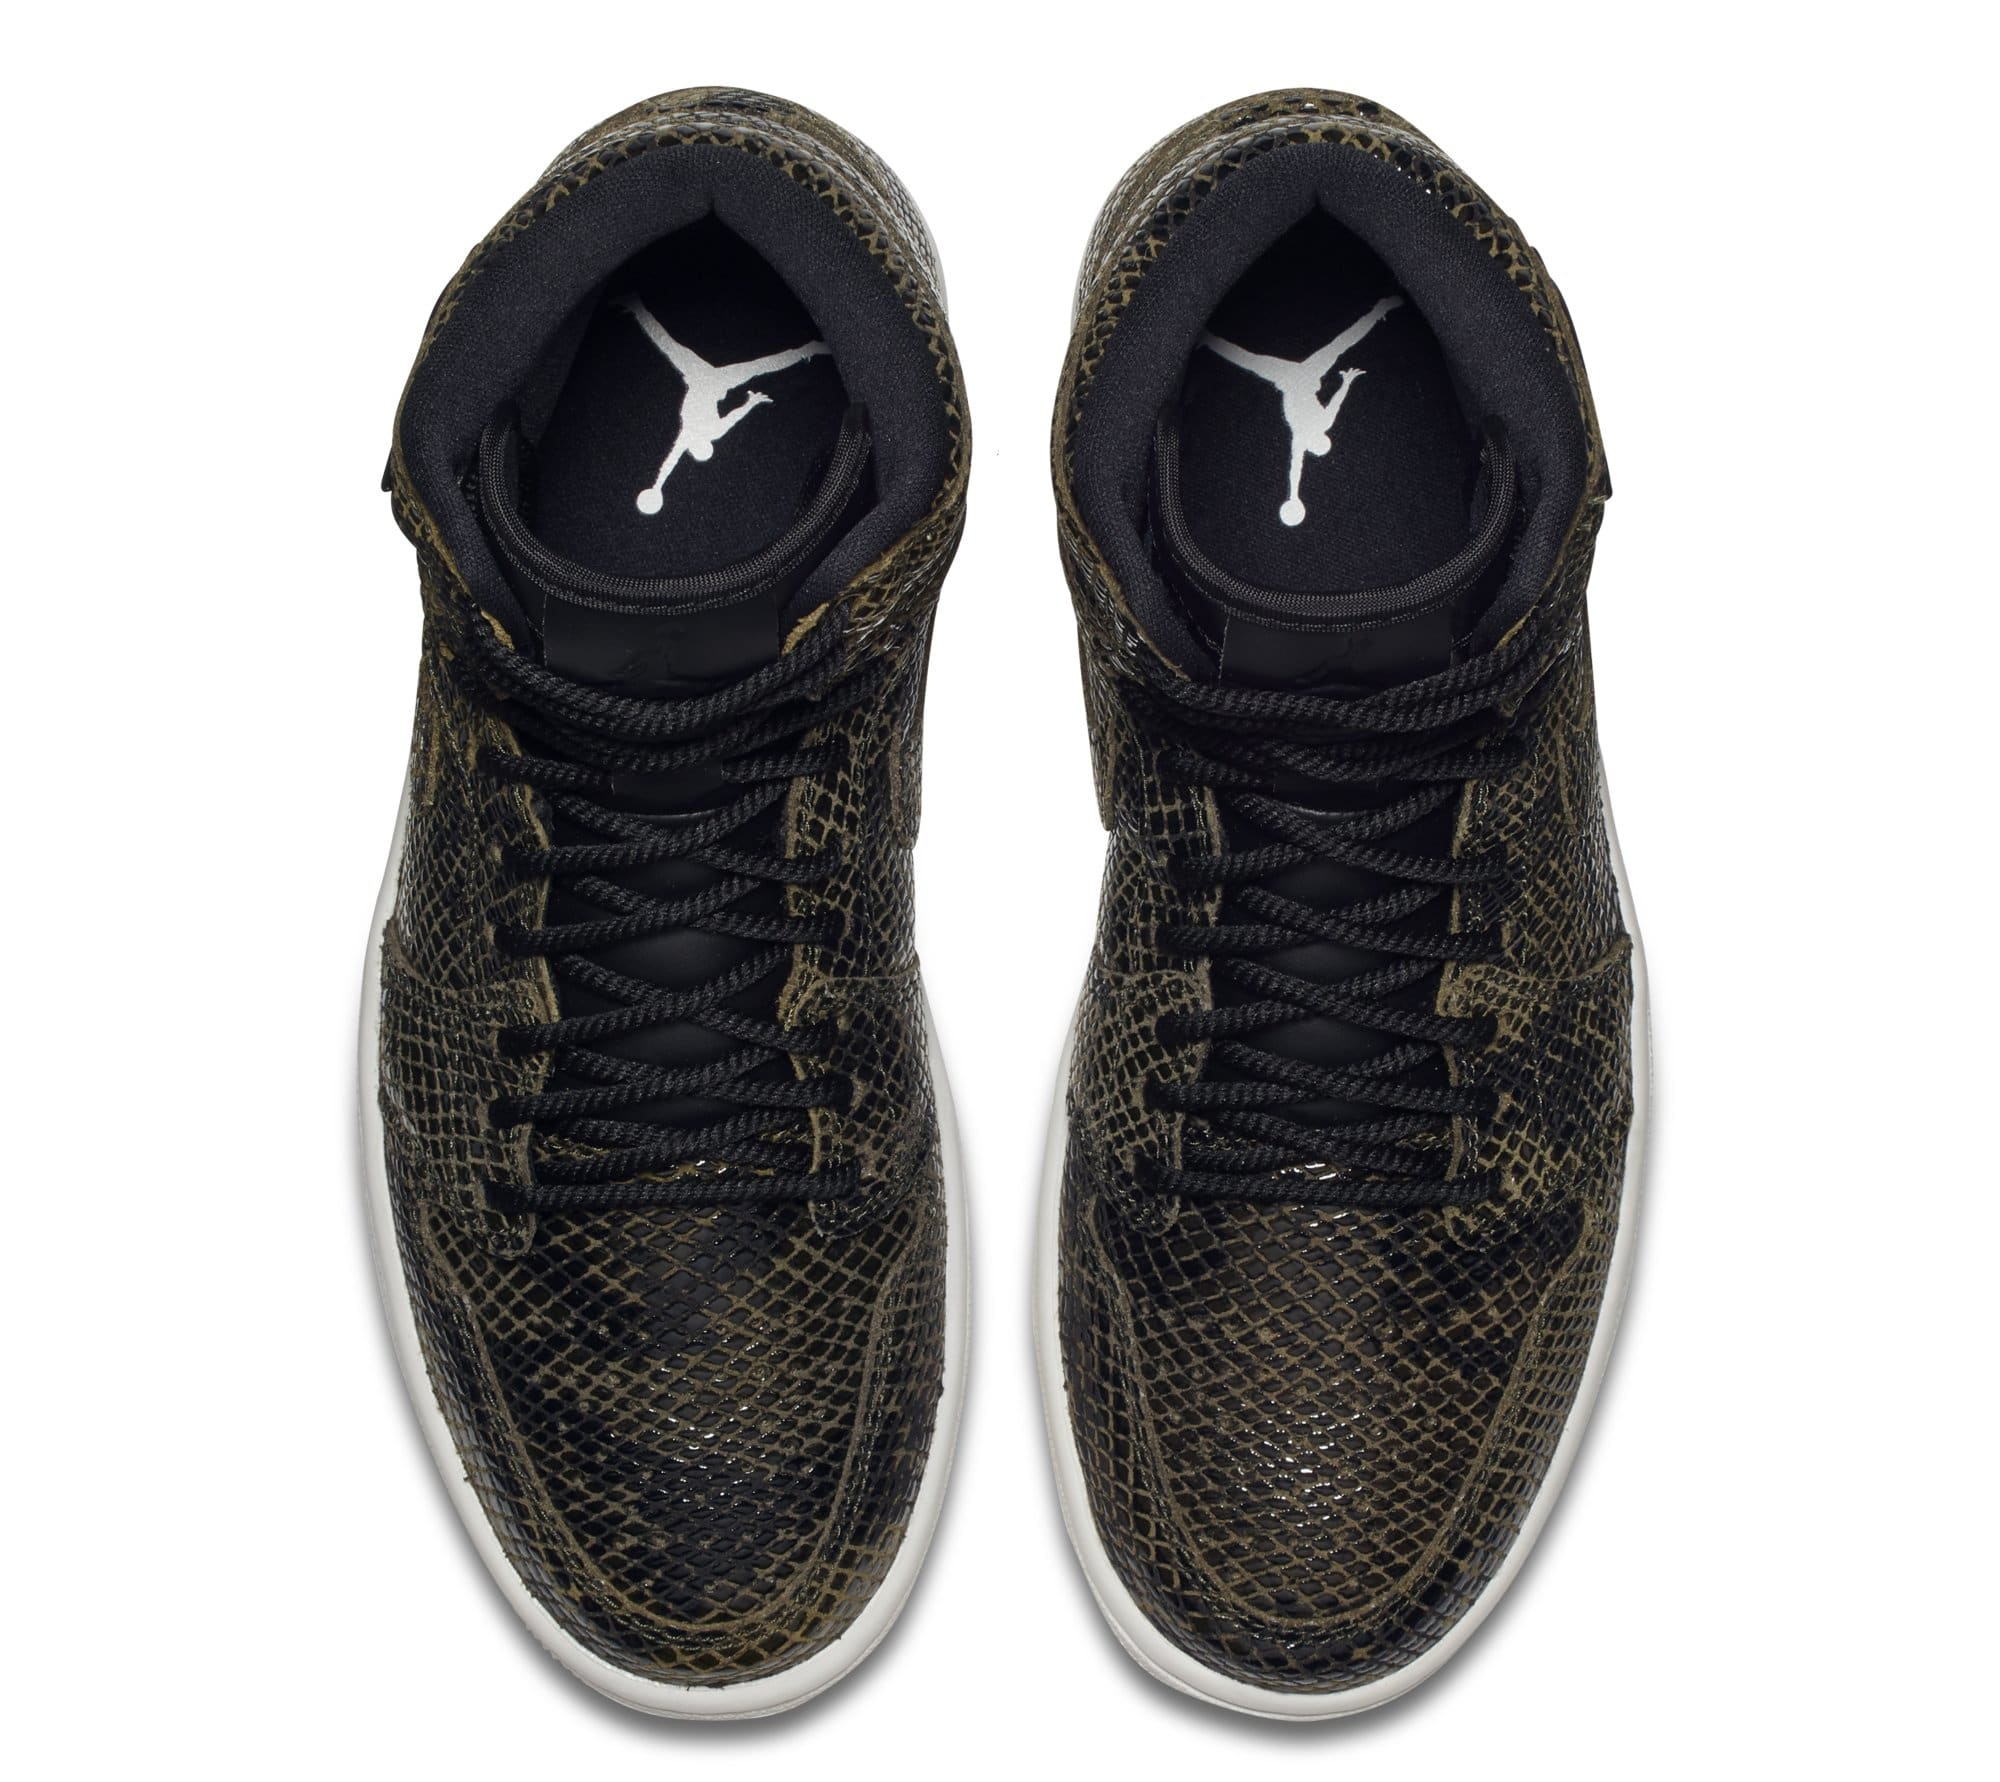 Air Jordan 1 Retro High Premium Women's Snake 'Olive Canvas' AH7389-302 (Top)